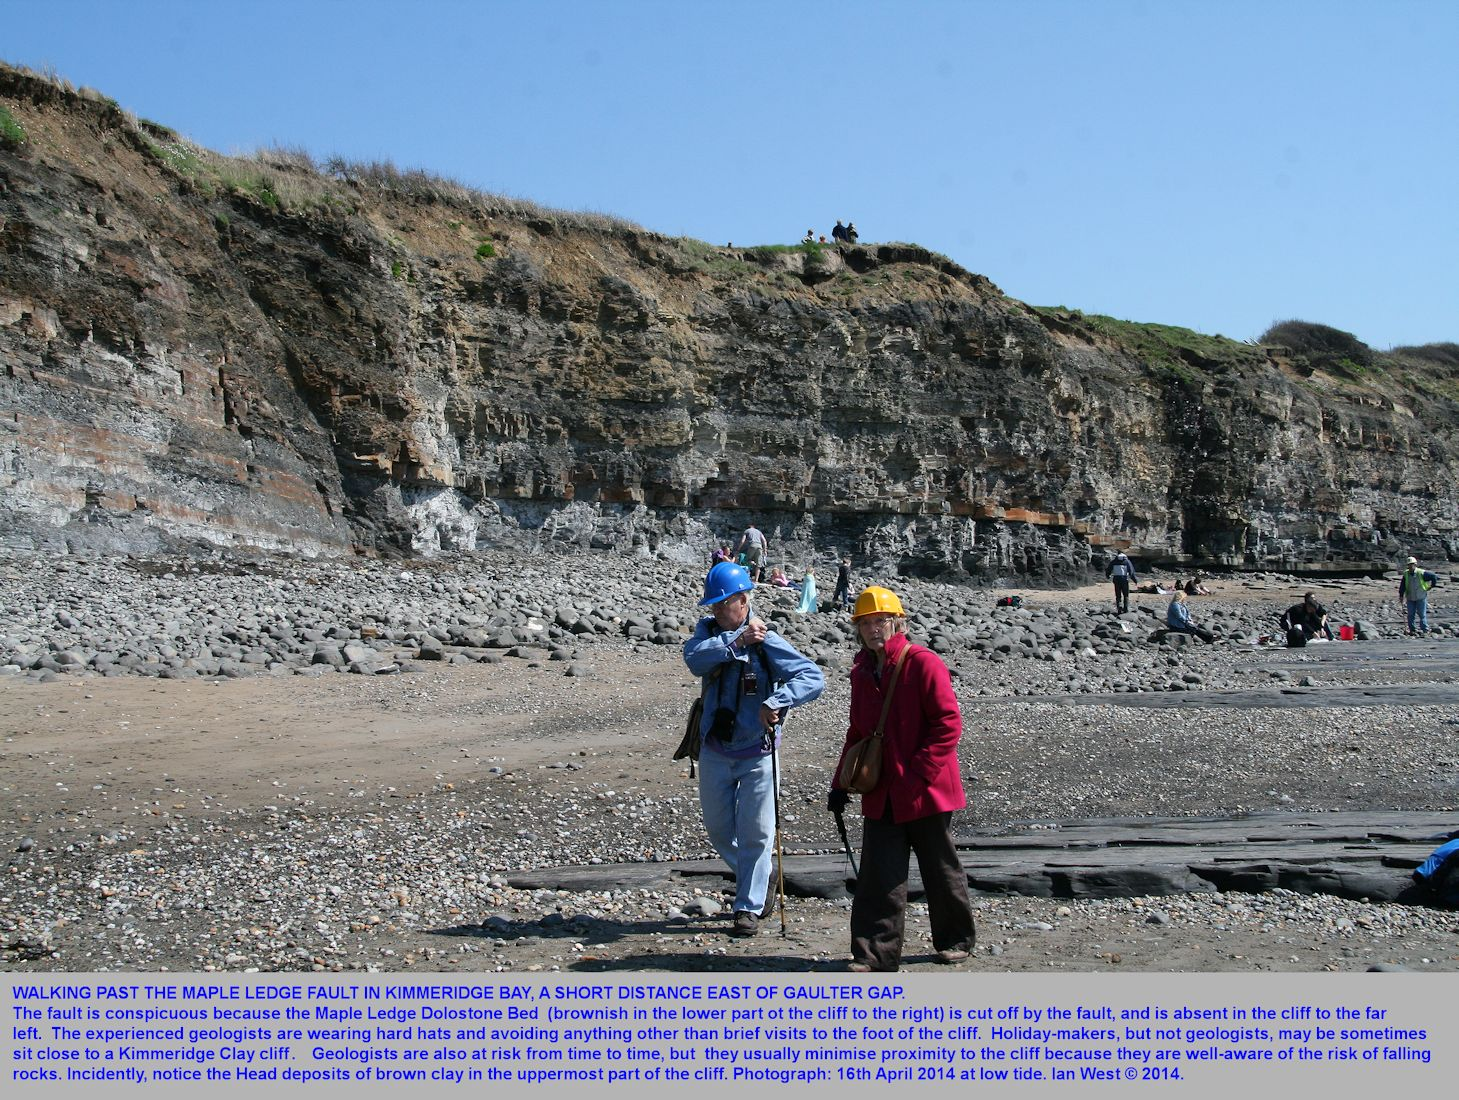 Geologists walk past the Maple Ledge Fault in Kimmeridge Bay, Dorset, taking the precaution of wearing hard hats, although the risk is very low except close to the cliff